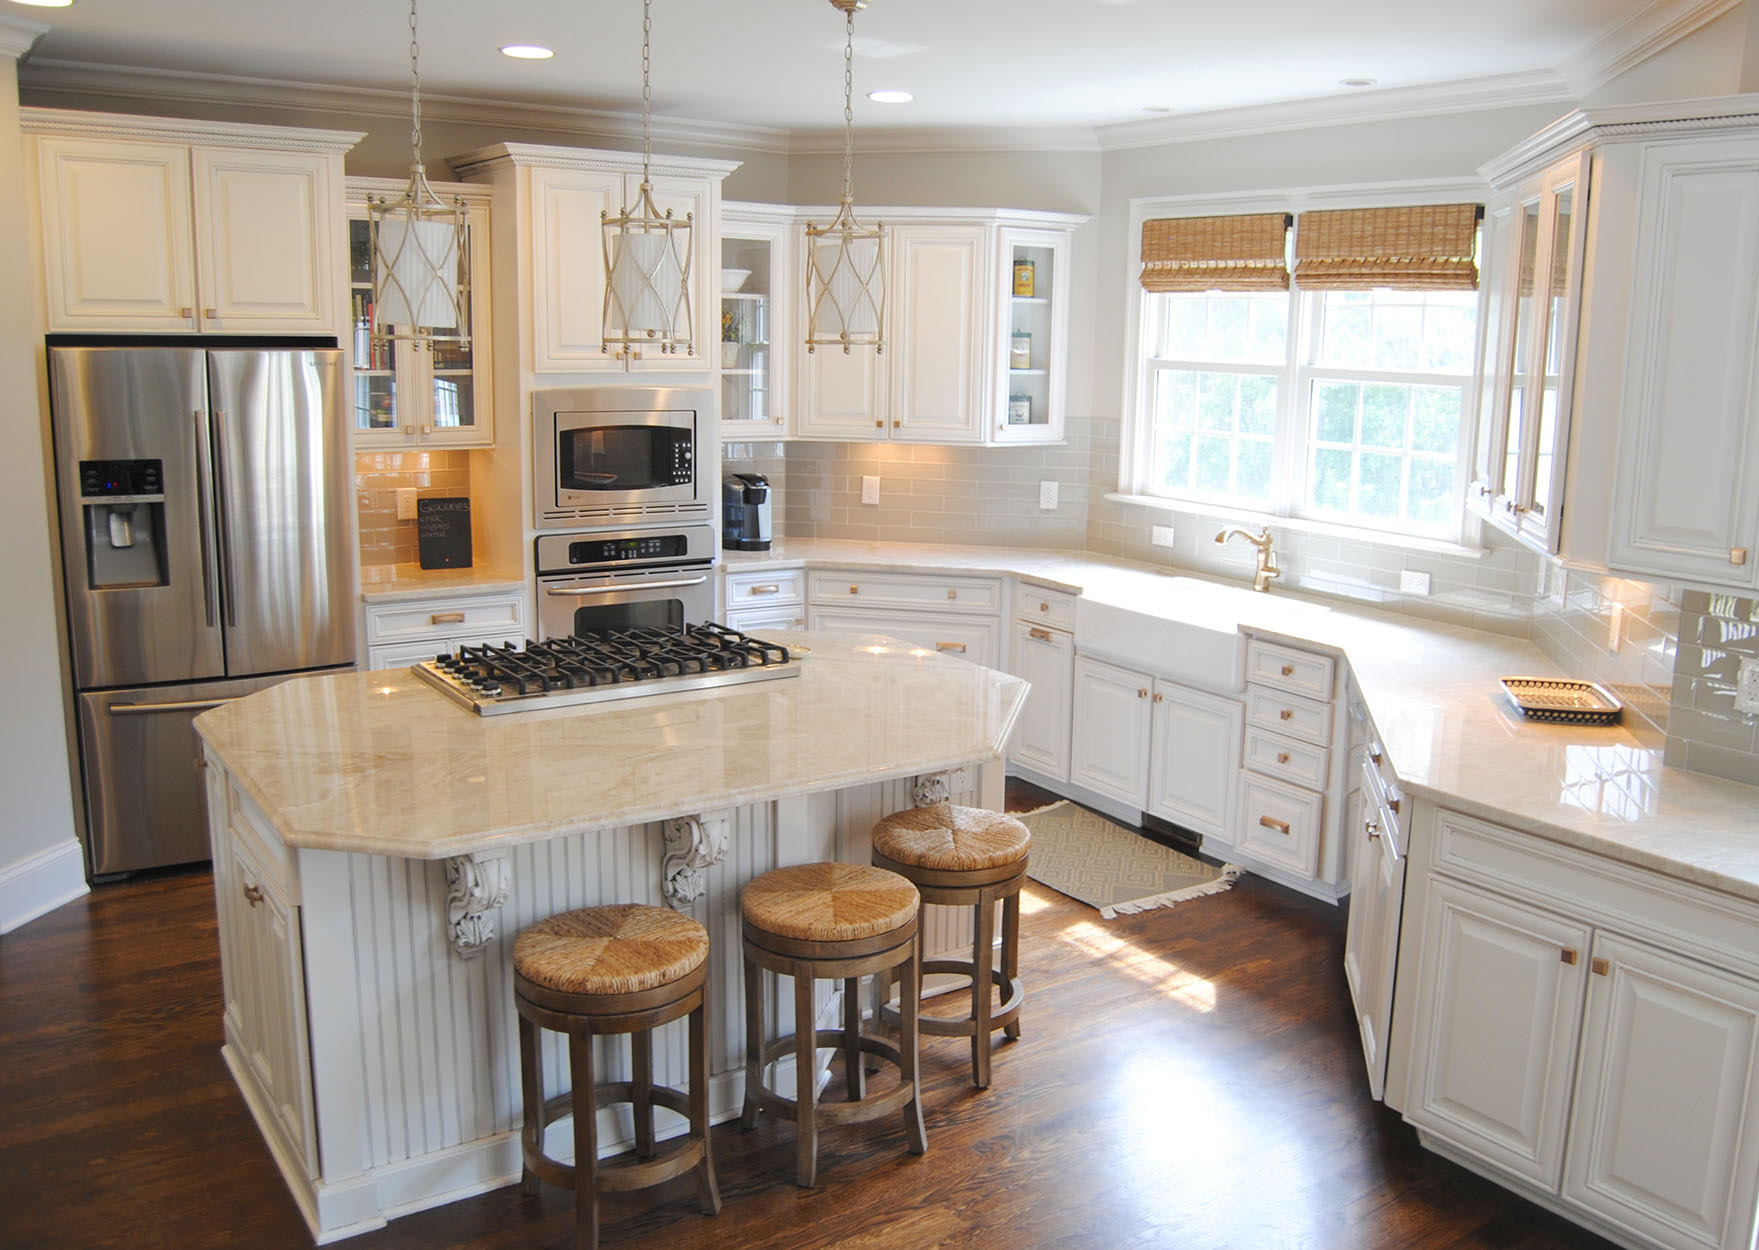 Specials - Granite Marble Quartz Countertops | East Coast Granite ...